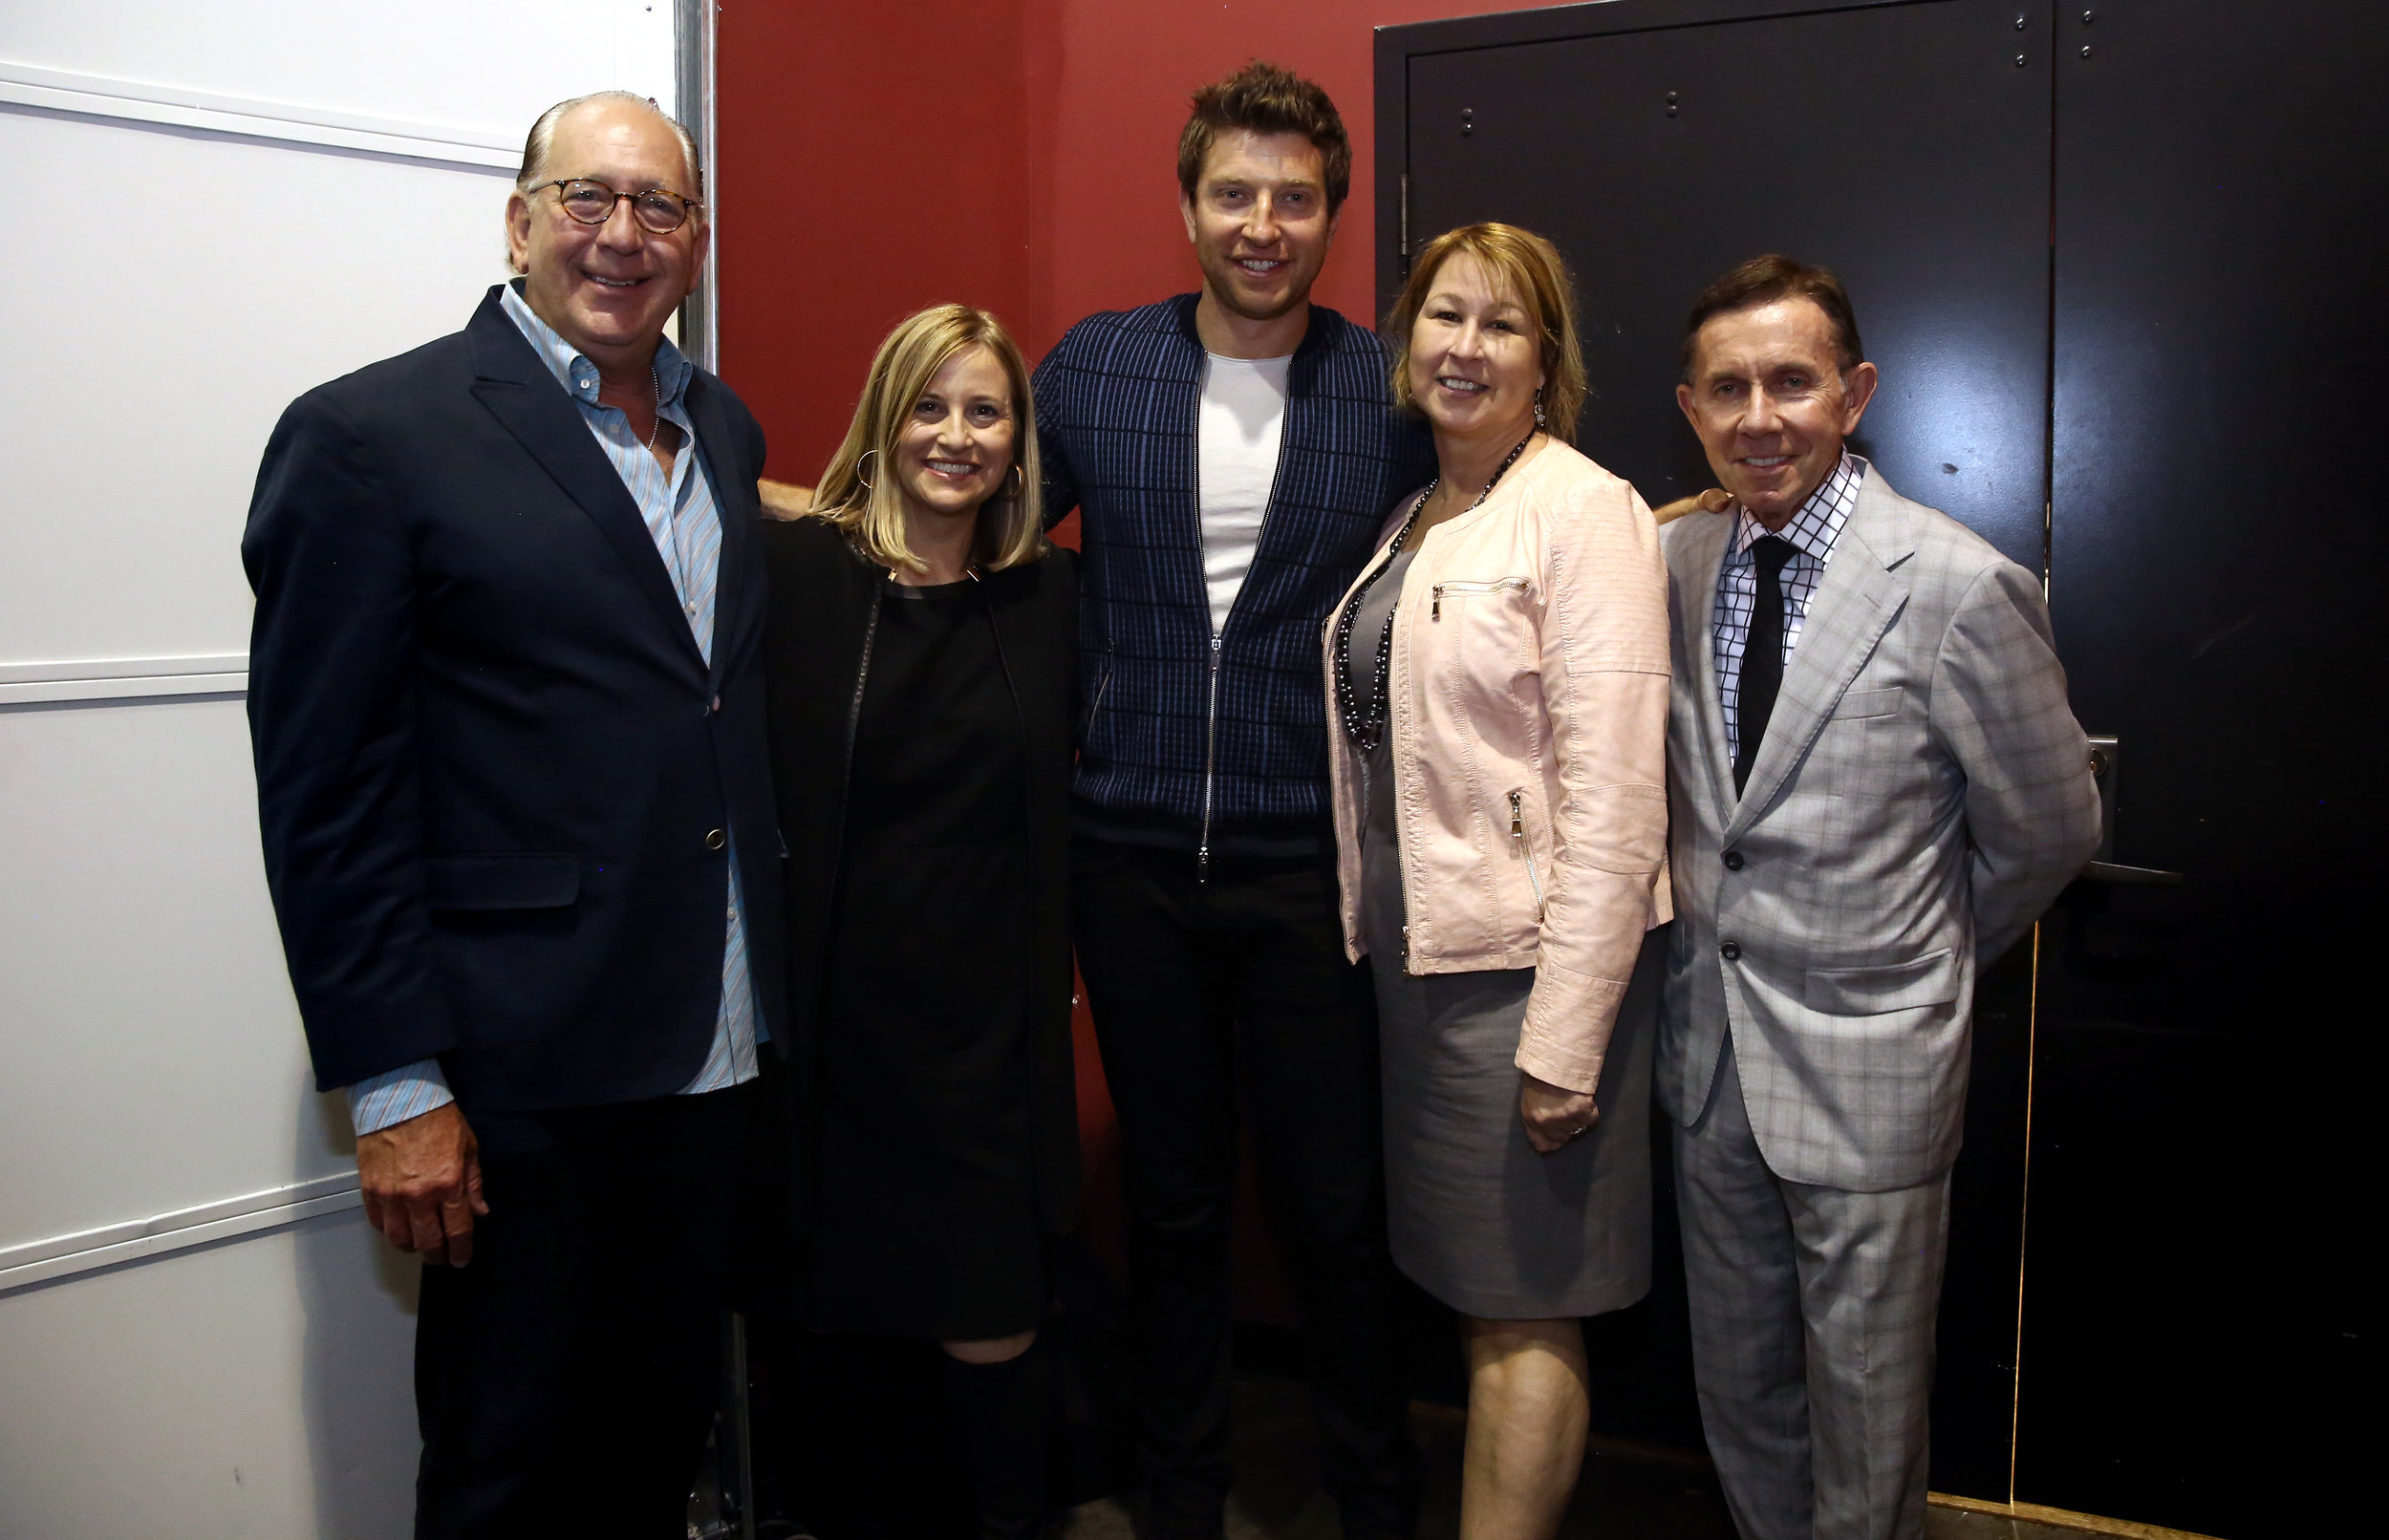 John Esposito, President/CEO, Warner Music Nashville and CMA Board Chairman; Nashville Mayor Megan Barry; Brett Eldredge; Sarah Trahern, CMA Chief Executive Officer; Joe Galante, CMA Foundation Board Chairman. Photo Credit: Kayla Schoen / CMA